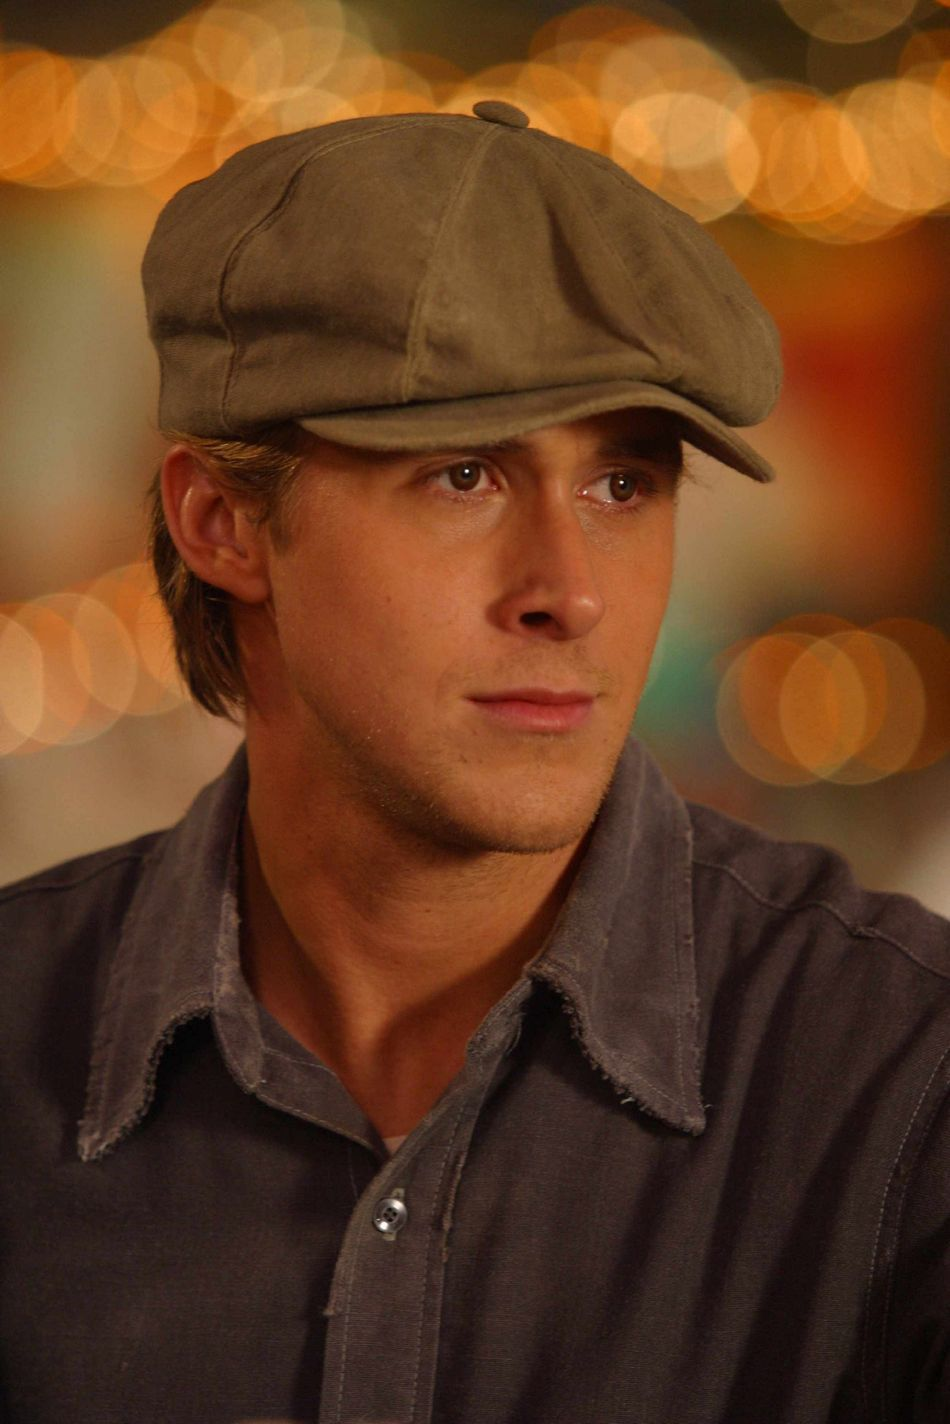 Ryan Gosling's Sexiest Moments From The Notebook | Men- Ryan Gosling